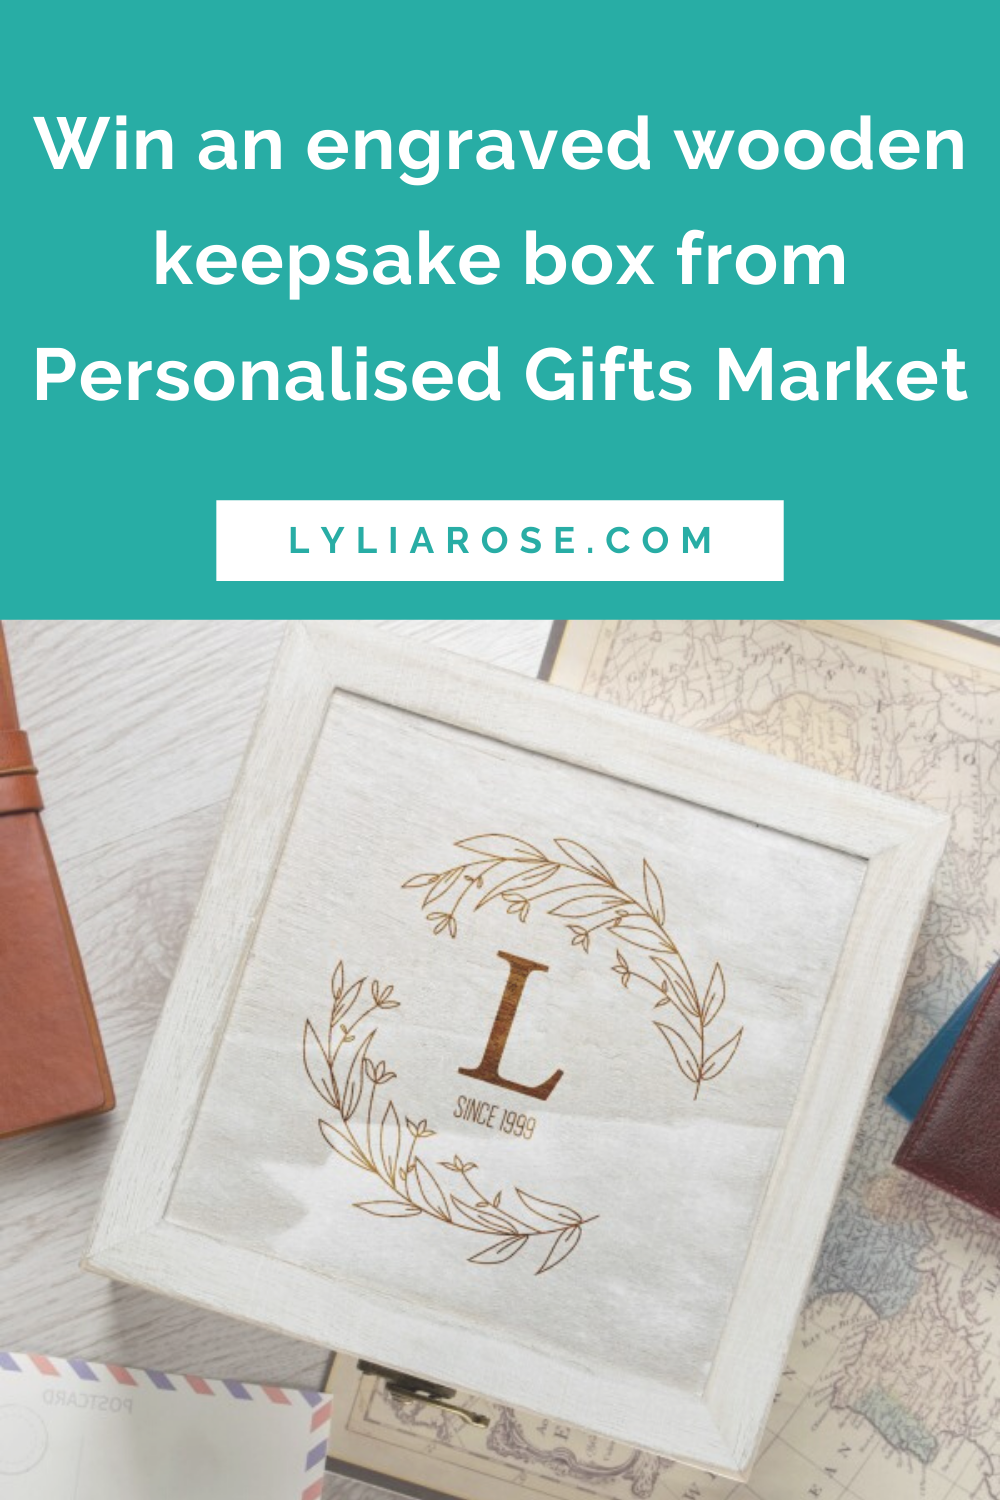 Win an engraved wooden keepsake box from Personalised Gifts Market